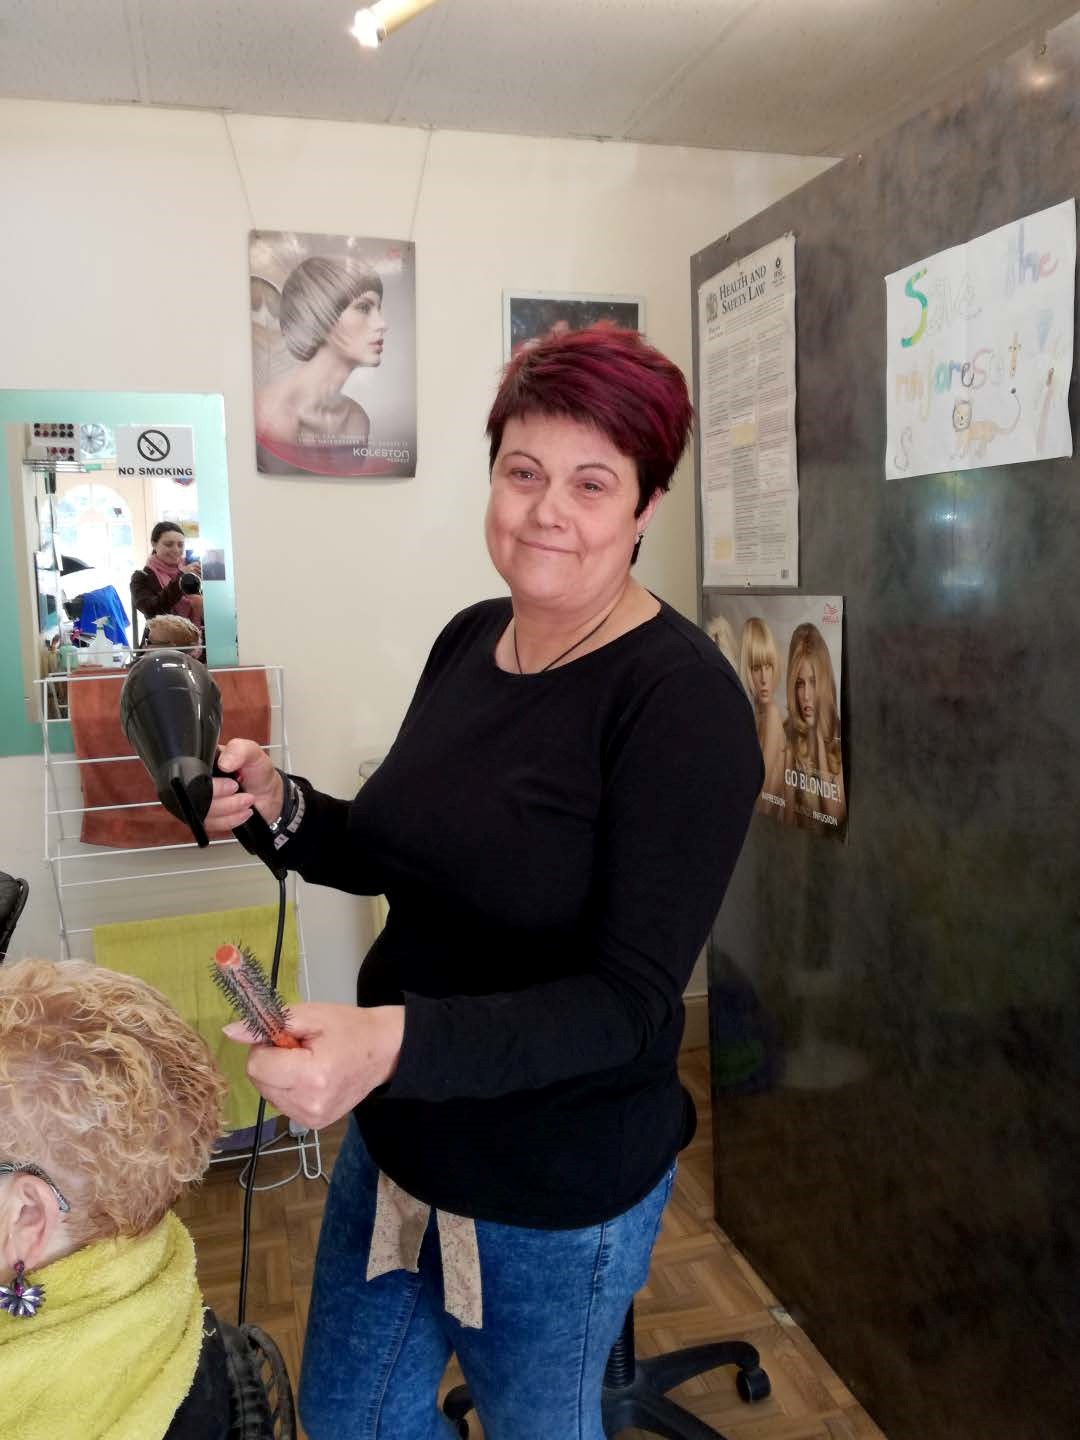 A smiling white woman with short red hair and a black top dries the hair or a blonde customer in her salon.